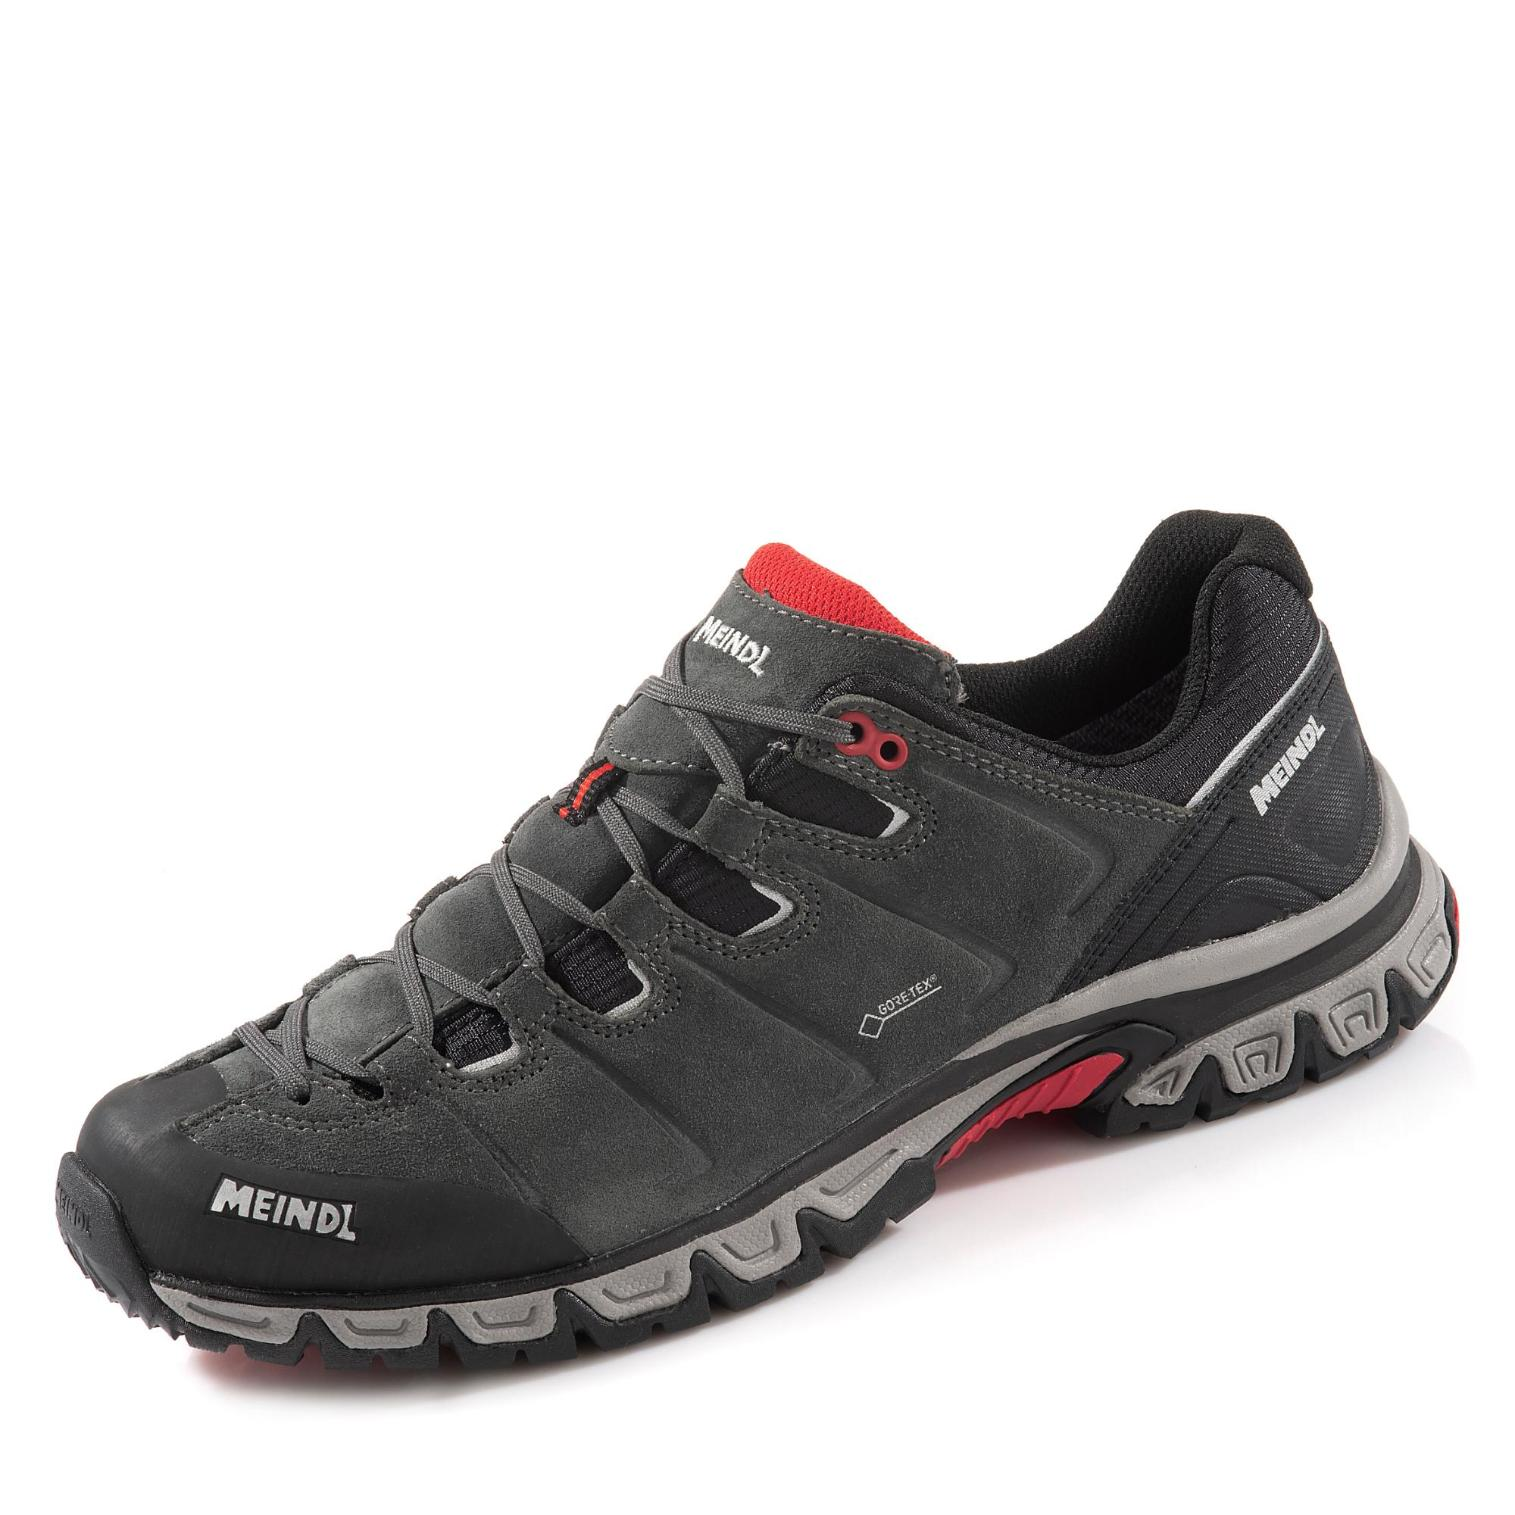 Meindl Tarvis GORE TEX® Outdoorschuh in Farbe anthrazitrot